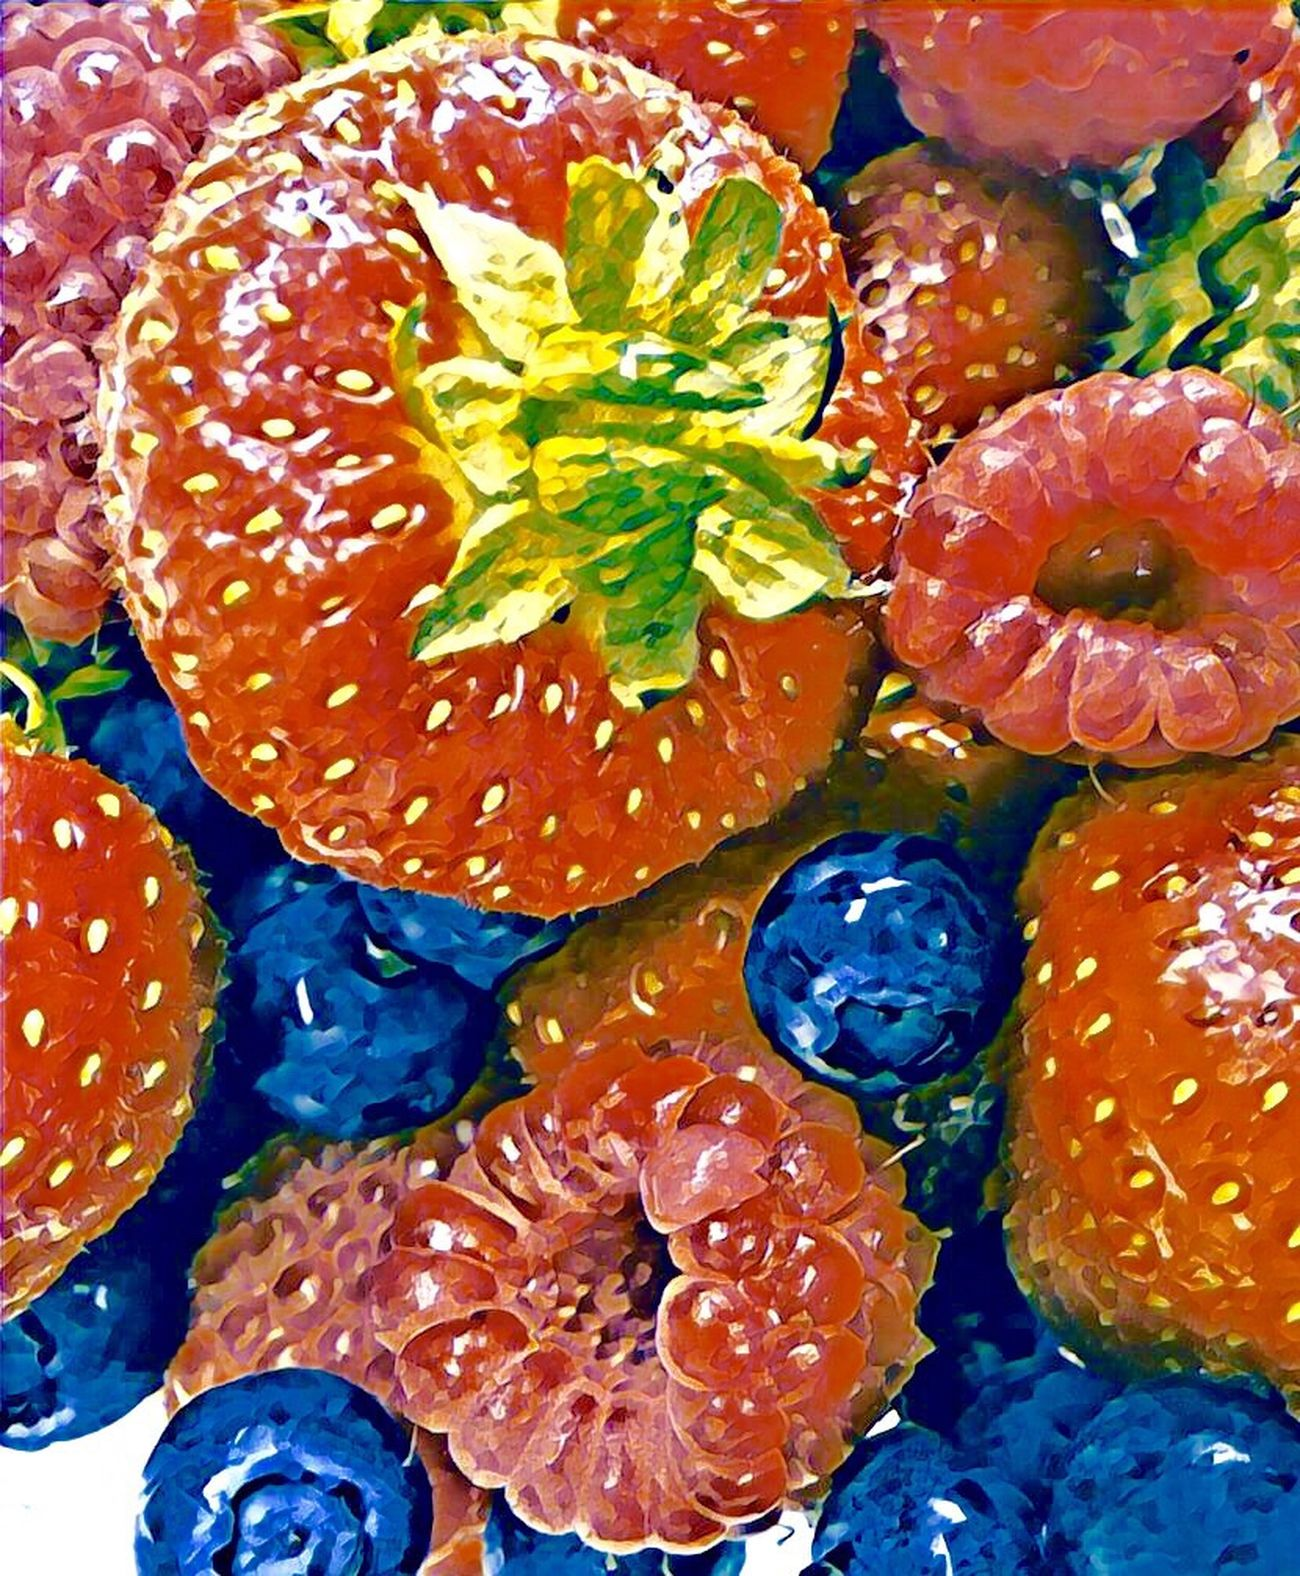 Transforming Photos Into Paintings Food Freshness Multi Colored Close-up Food And Drink Healthy Eating Fruit Fruitporn Fruit Photography Fruits And Vegetables Fruity Color Palette Colors Rainbow Colors Berries Berry Fruit Berries Collection